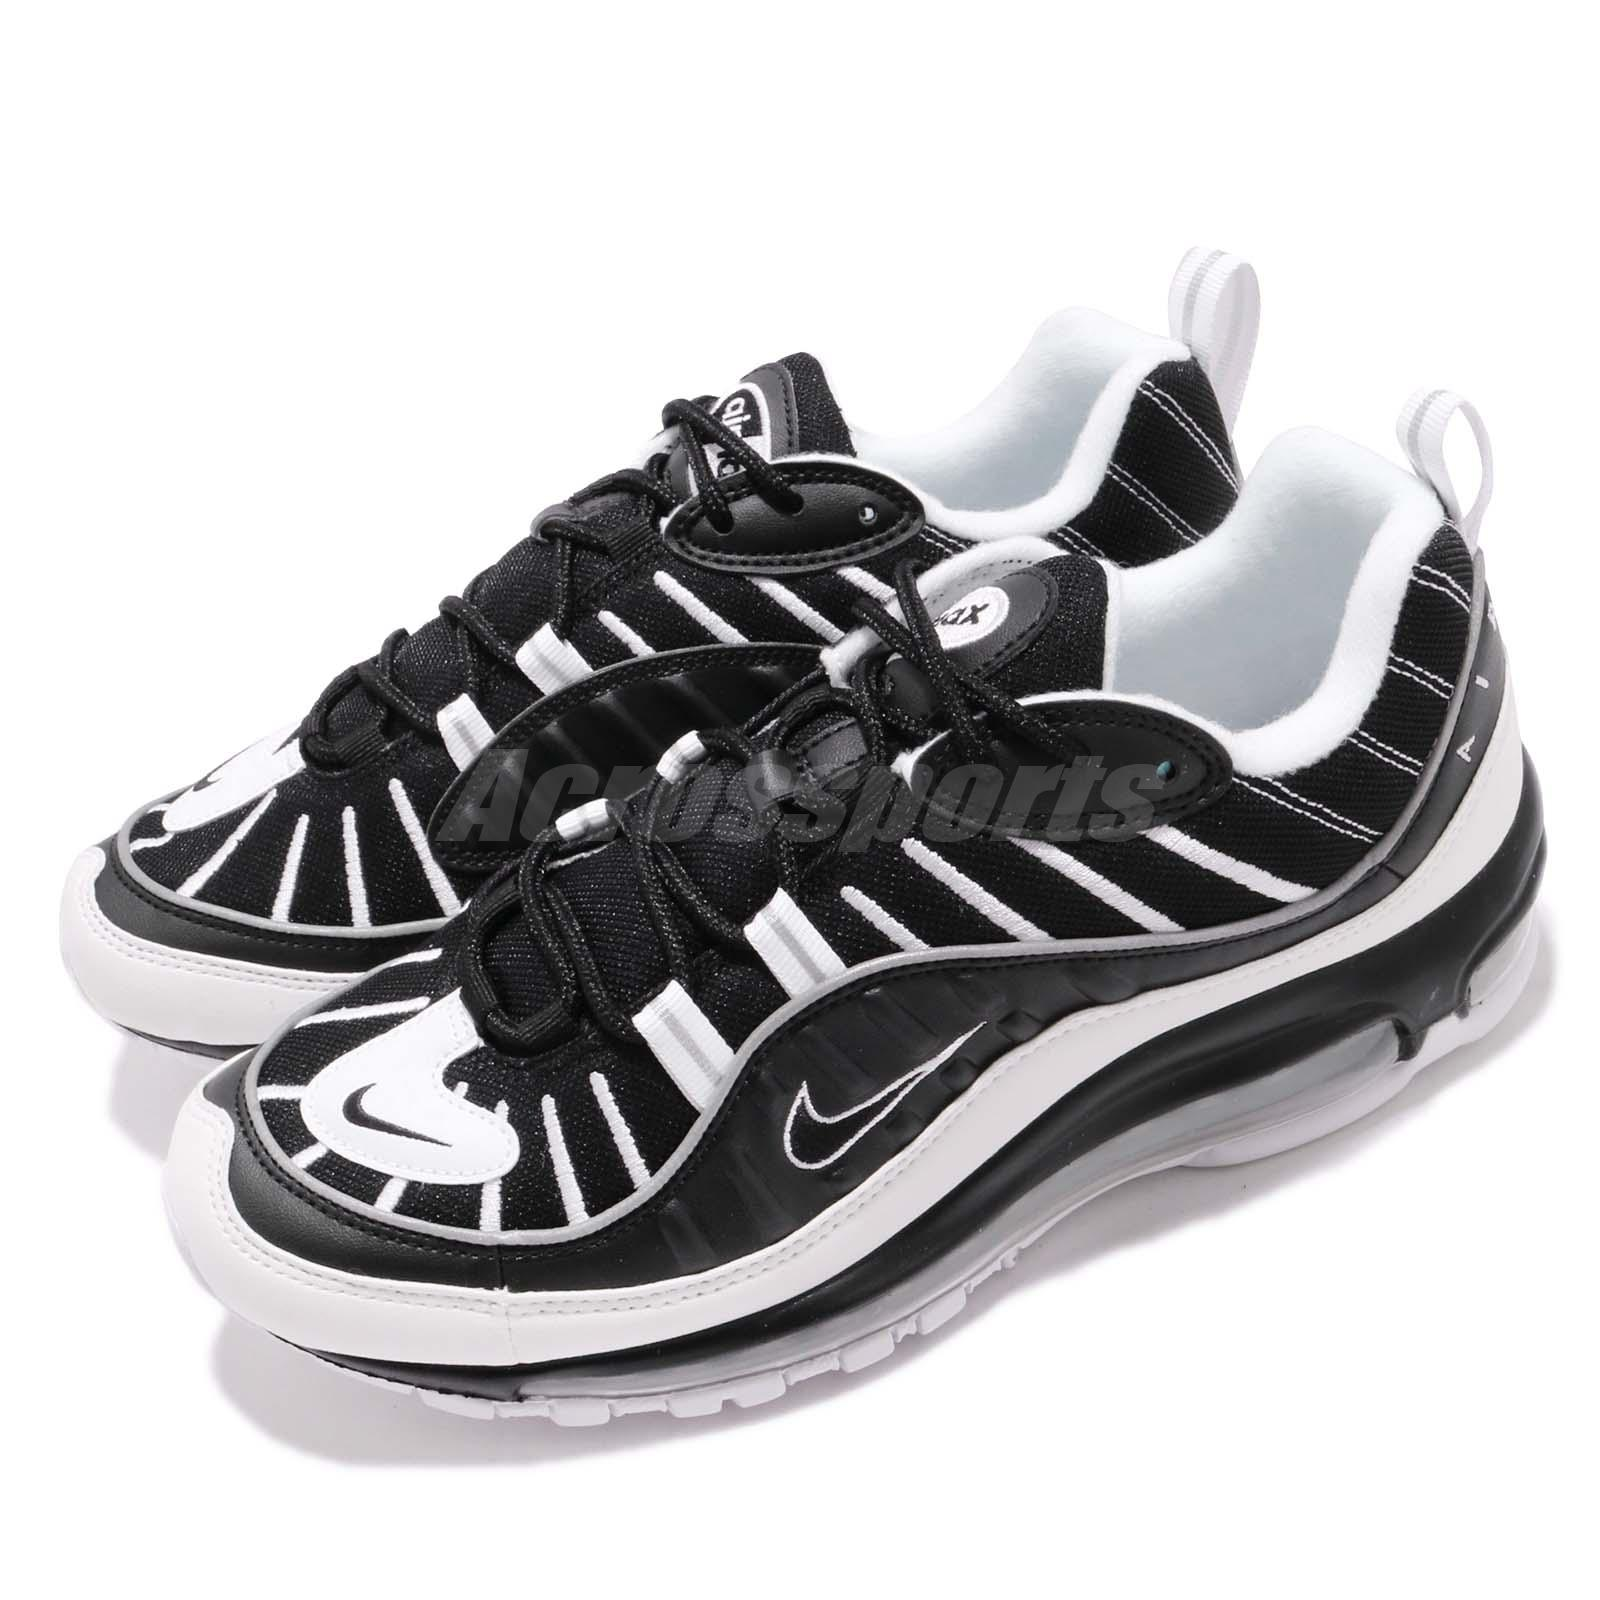 brand new 4942d fbbe1 Details about Nike Air Max 98 Black White Silver Mens Running Shoes  Sneakers 640744-010